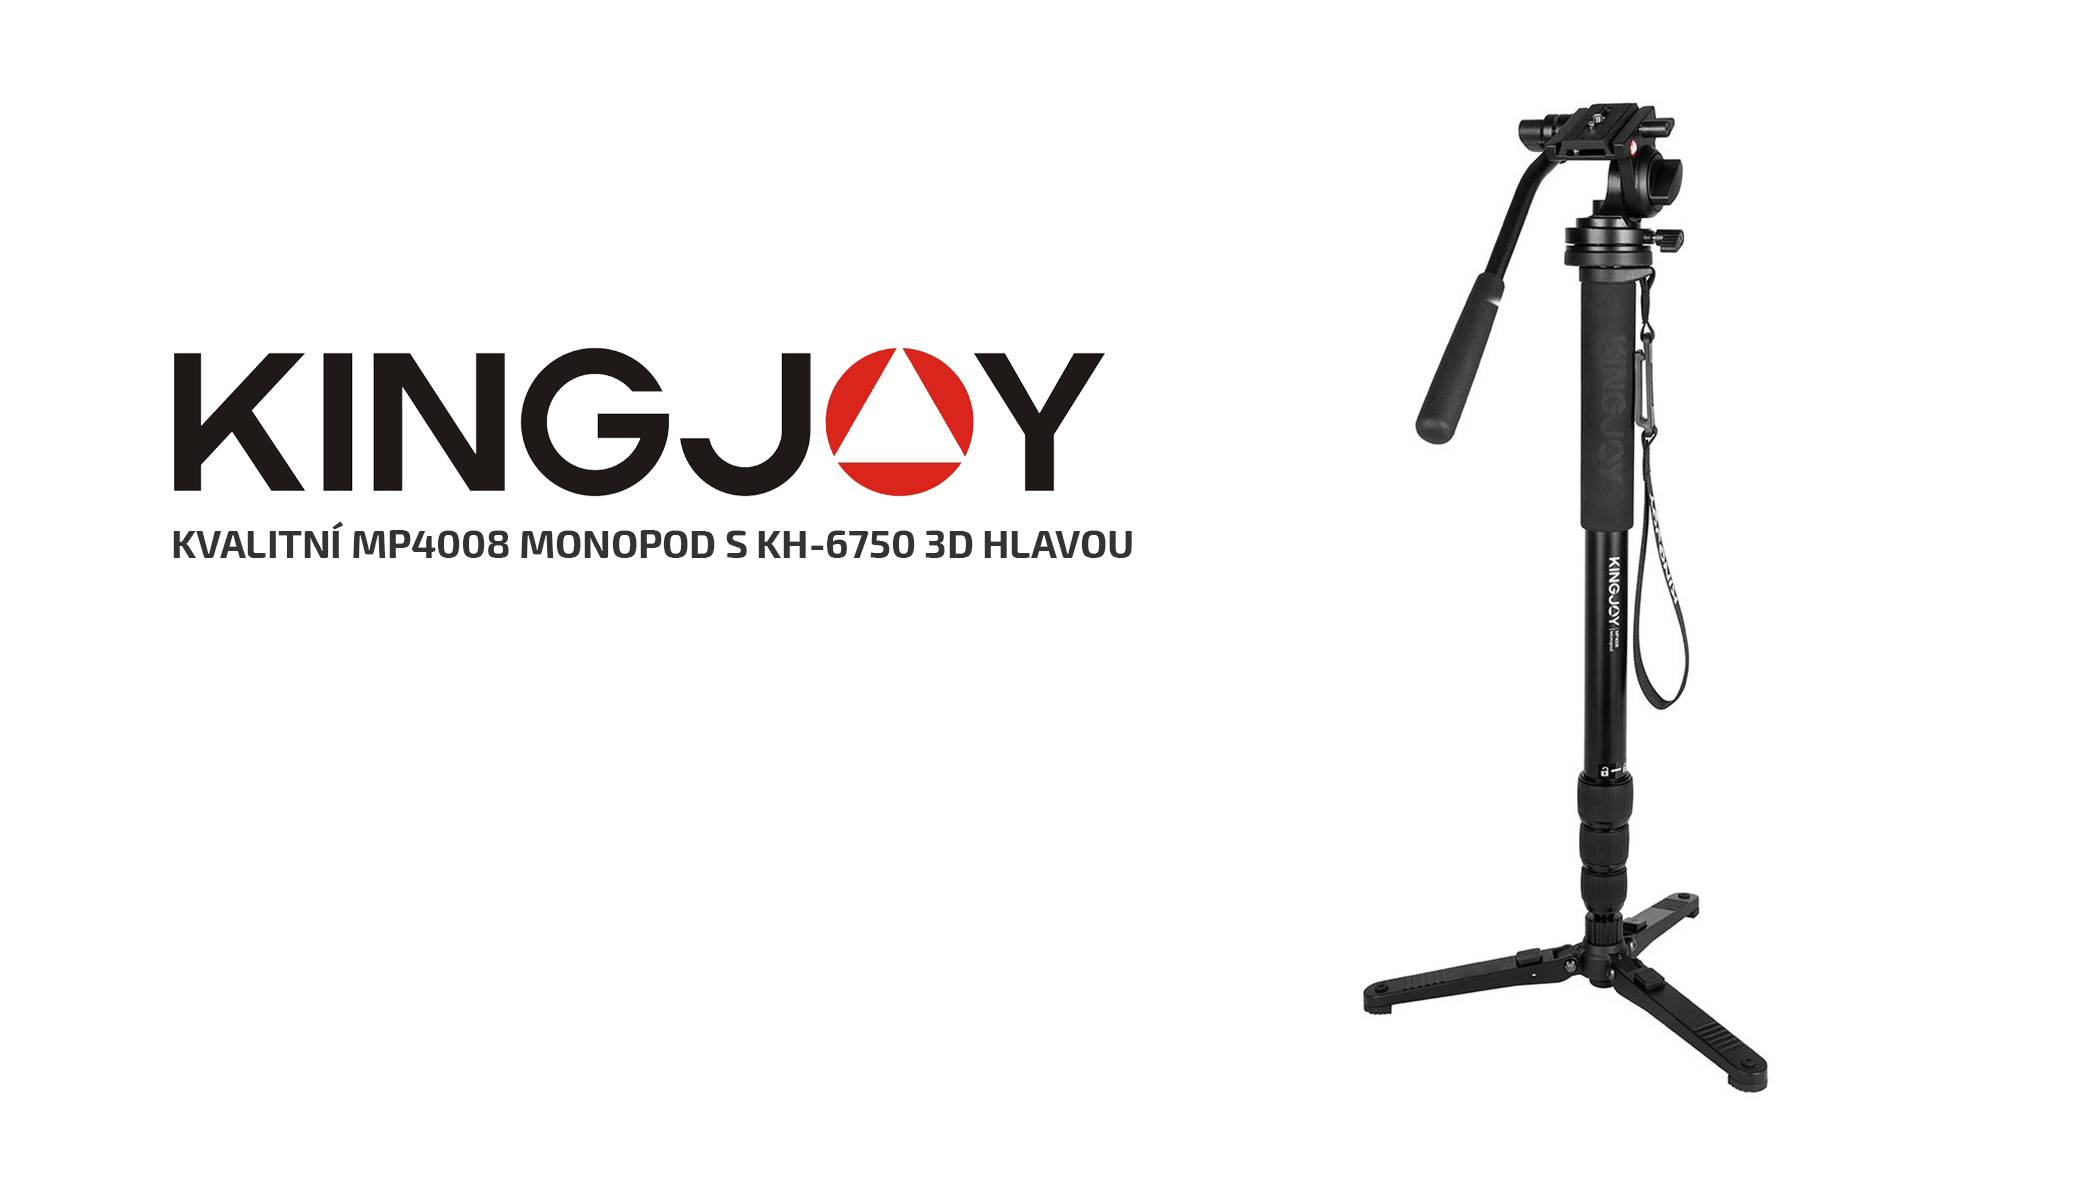 film-technika-kingjoy-monopod-mp4008-s-3d-hlavou-kh-6750